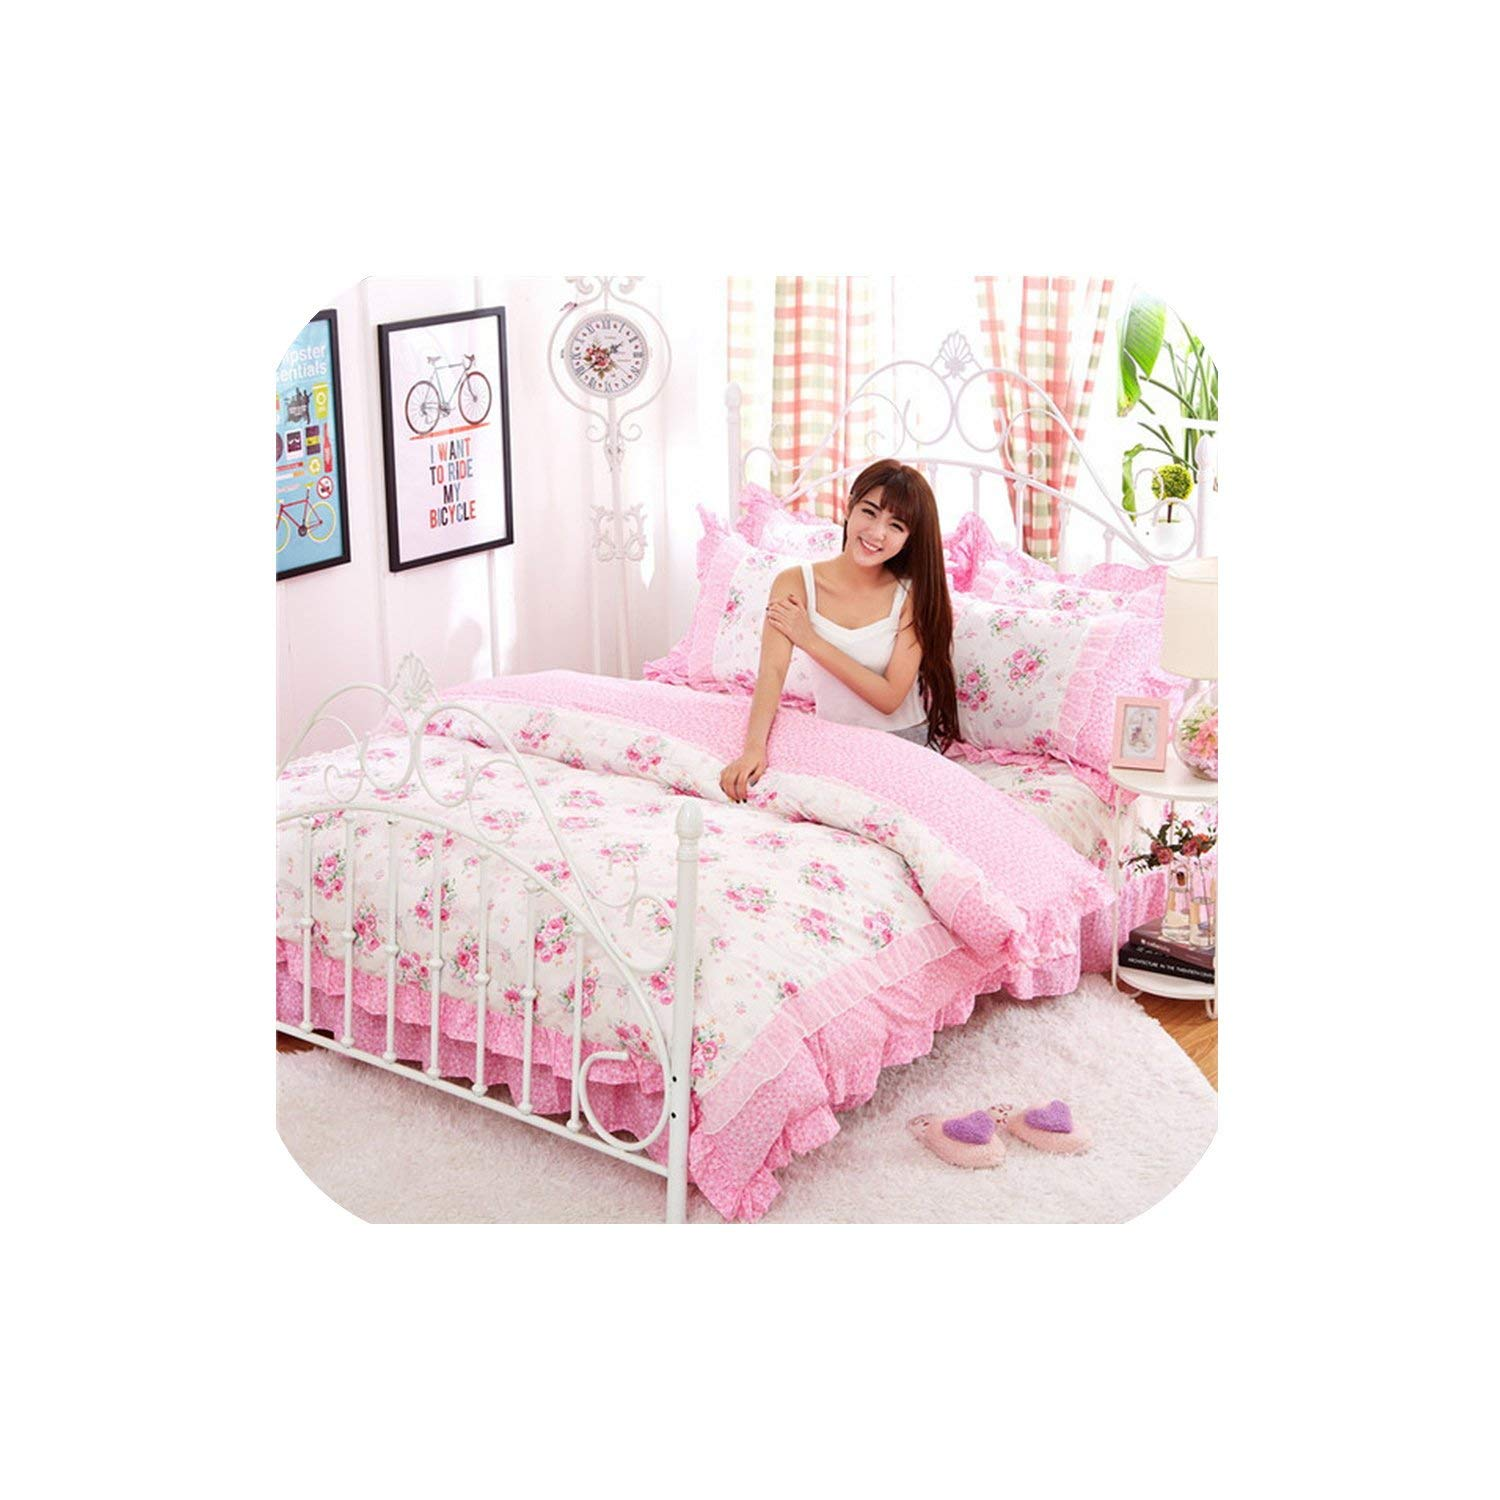 LOVE-JING Pink Lace Korean Bedding Set 4Pcs Bedspread Beautiful Princess Style Kid Girls Twin Full Queen King Size Bed Skirt Duvet Covers,Style1,Queen 4Pcs